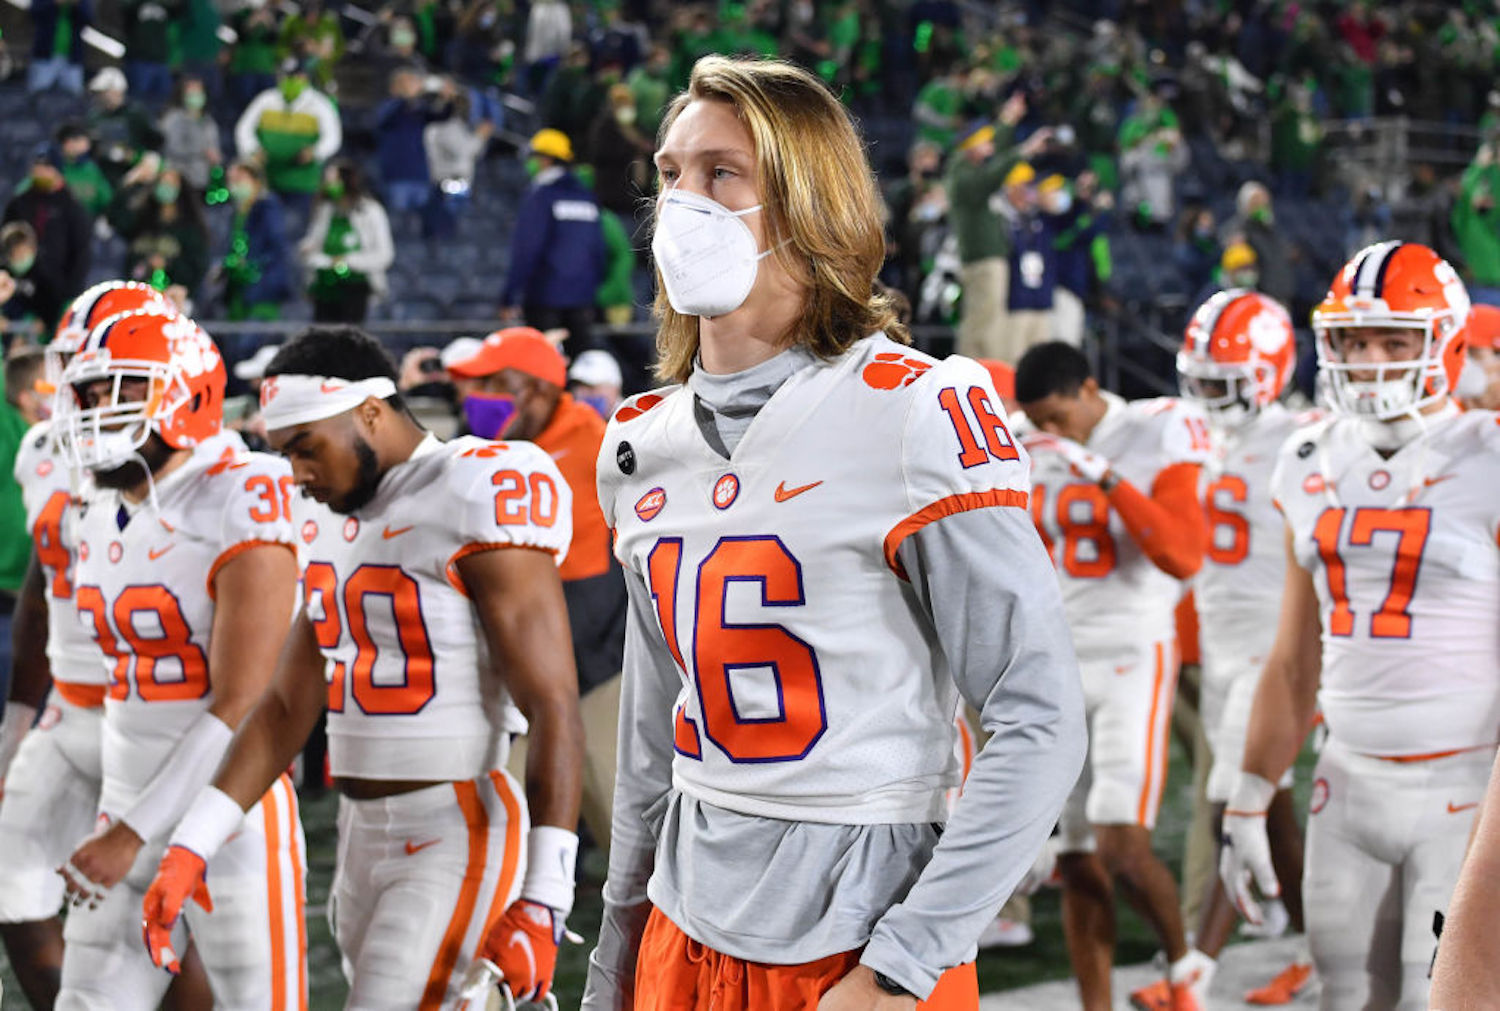 Can Clemson Still Make the College Football Playoff After Losing to Notre Dame?